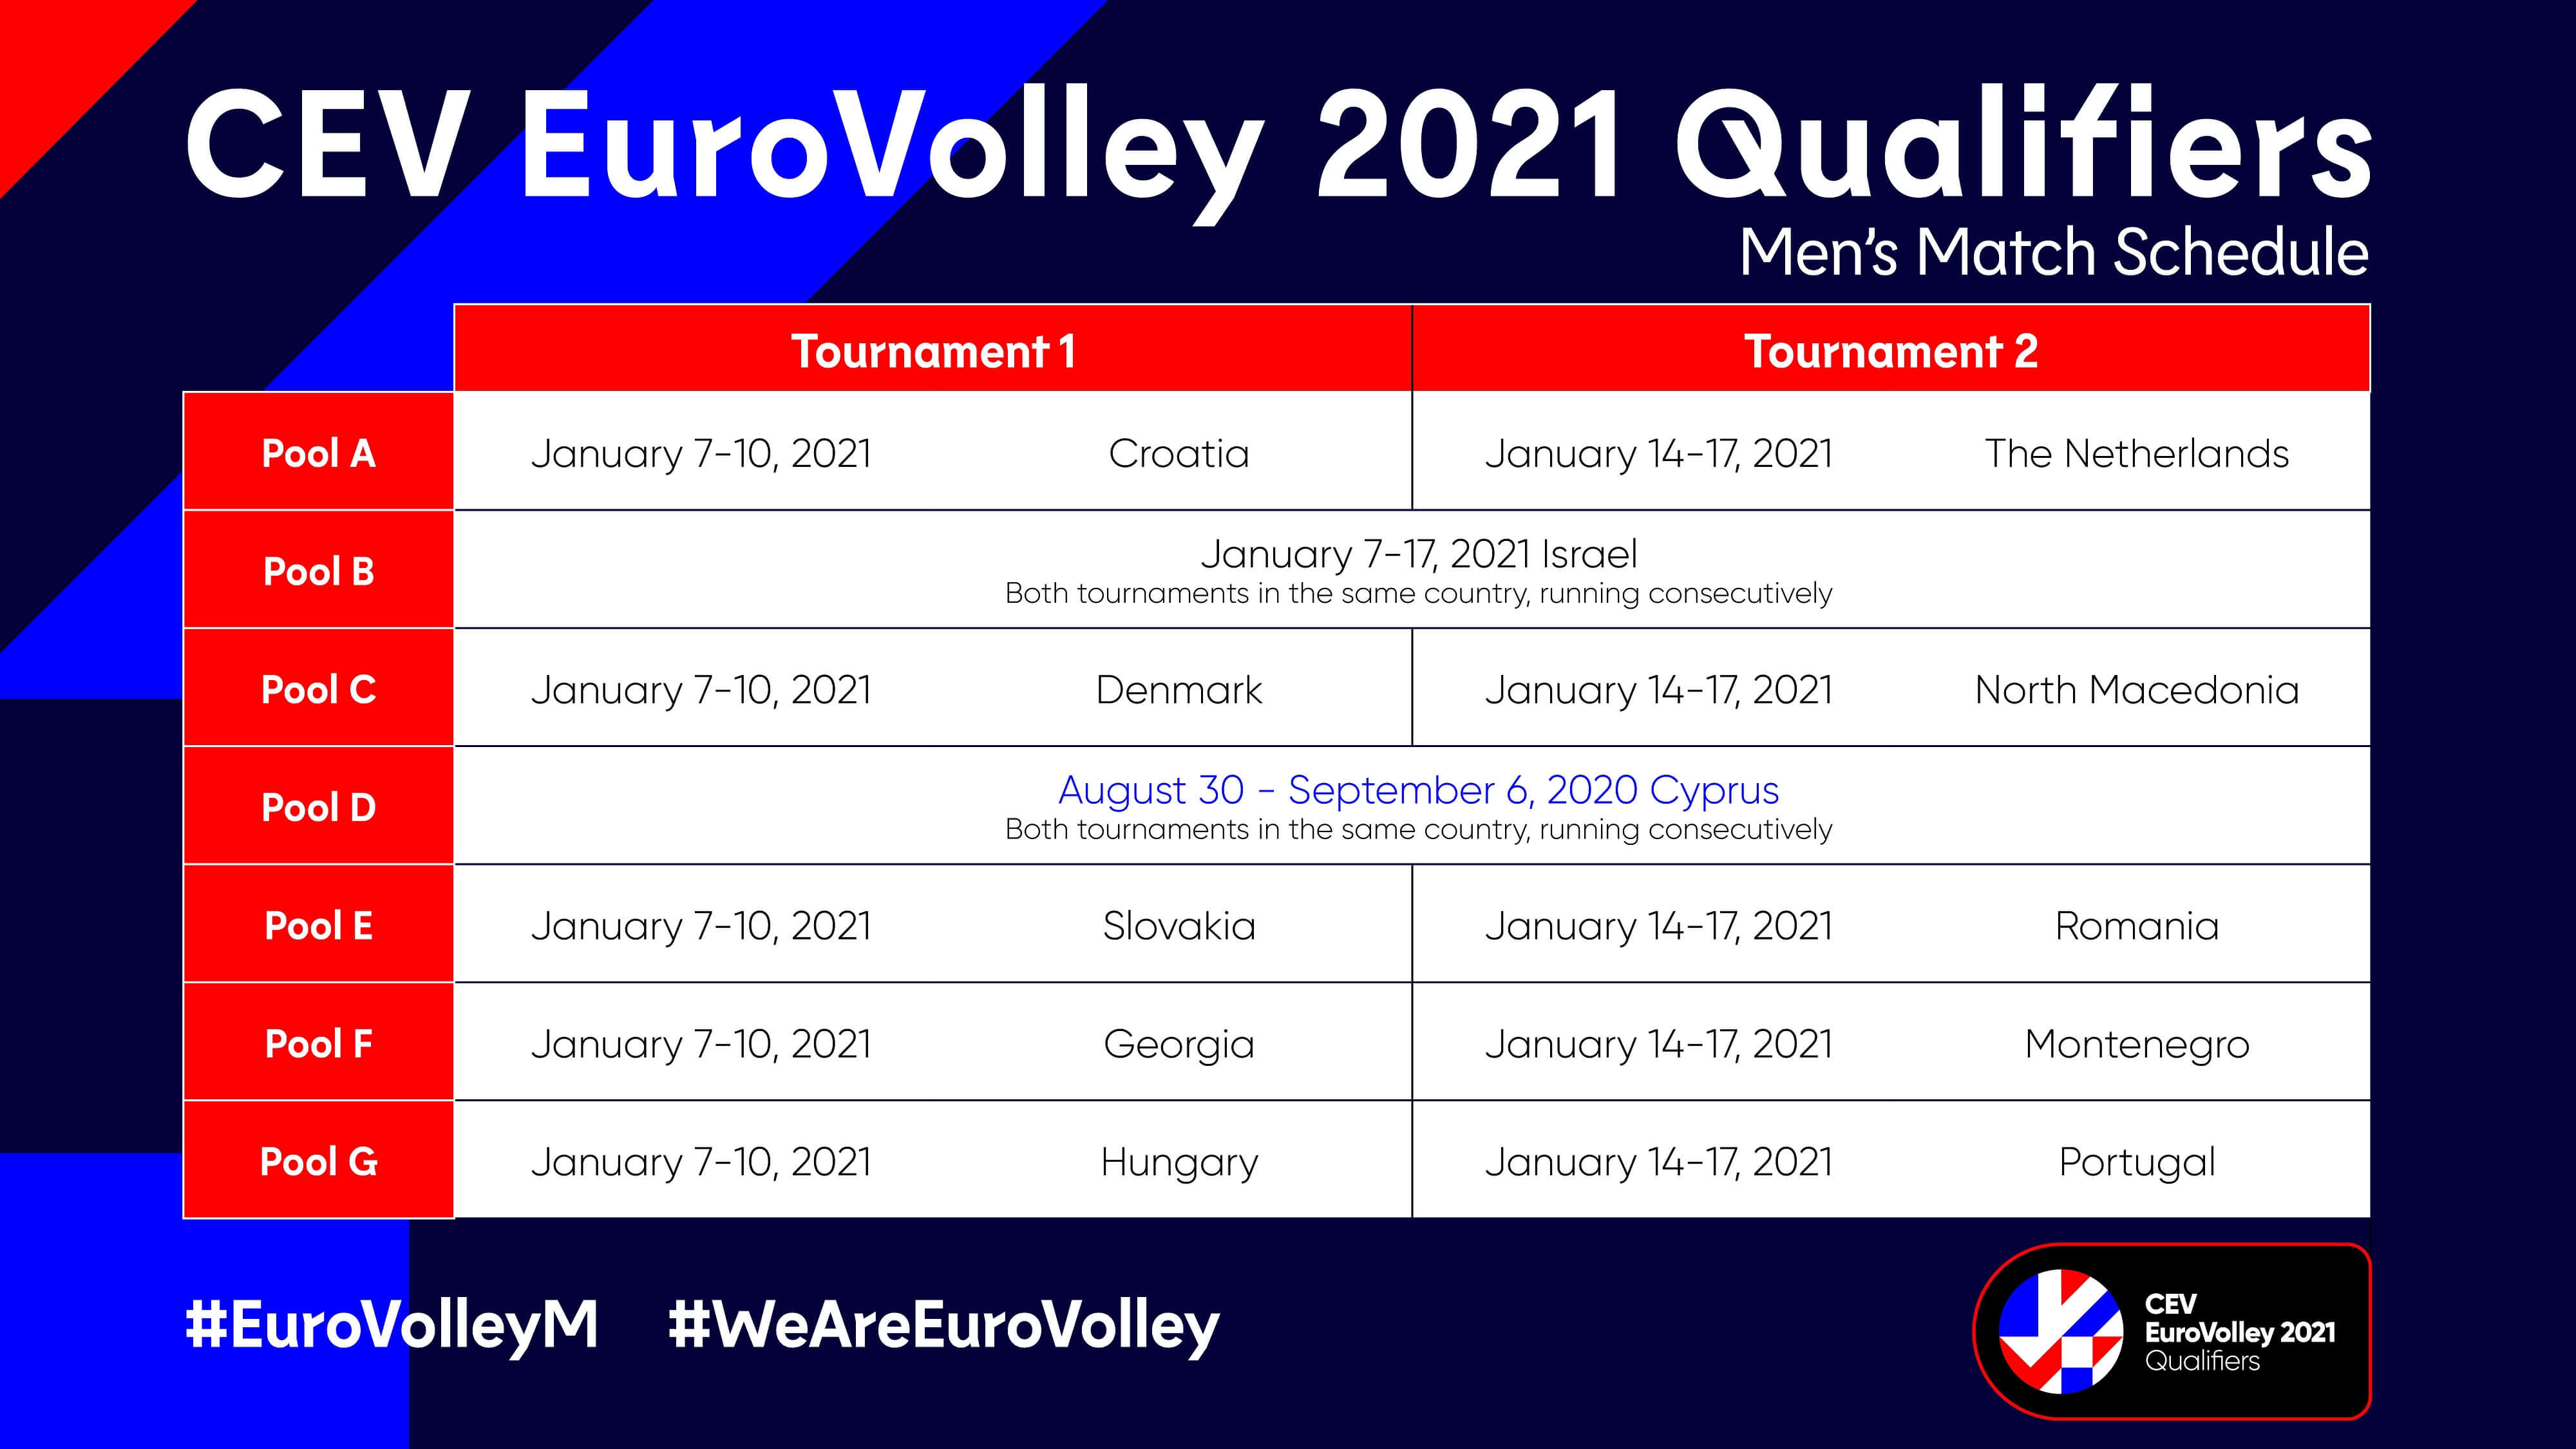 EuroVolley 2021 Qualifiers men